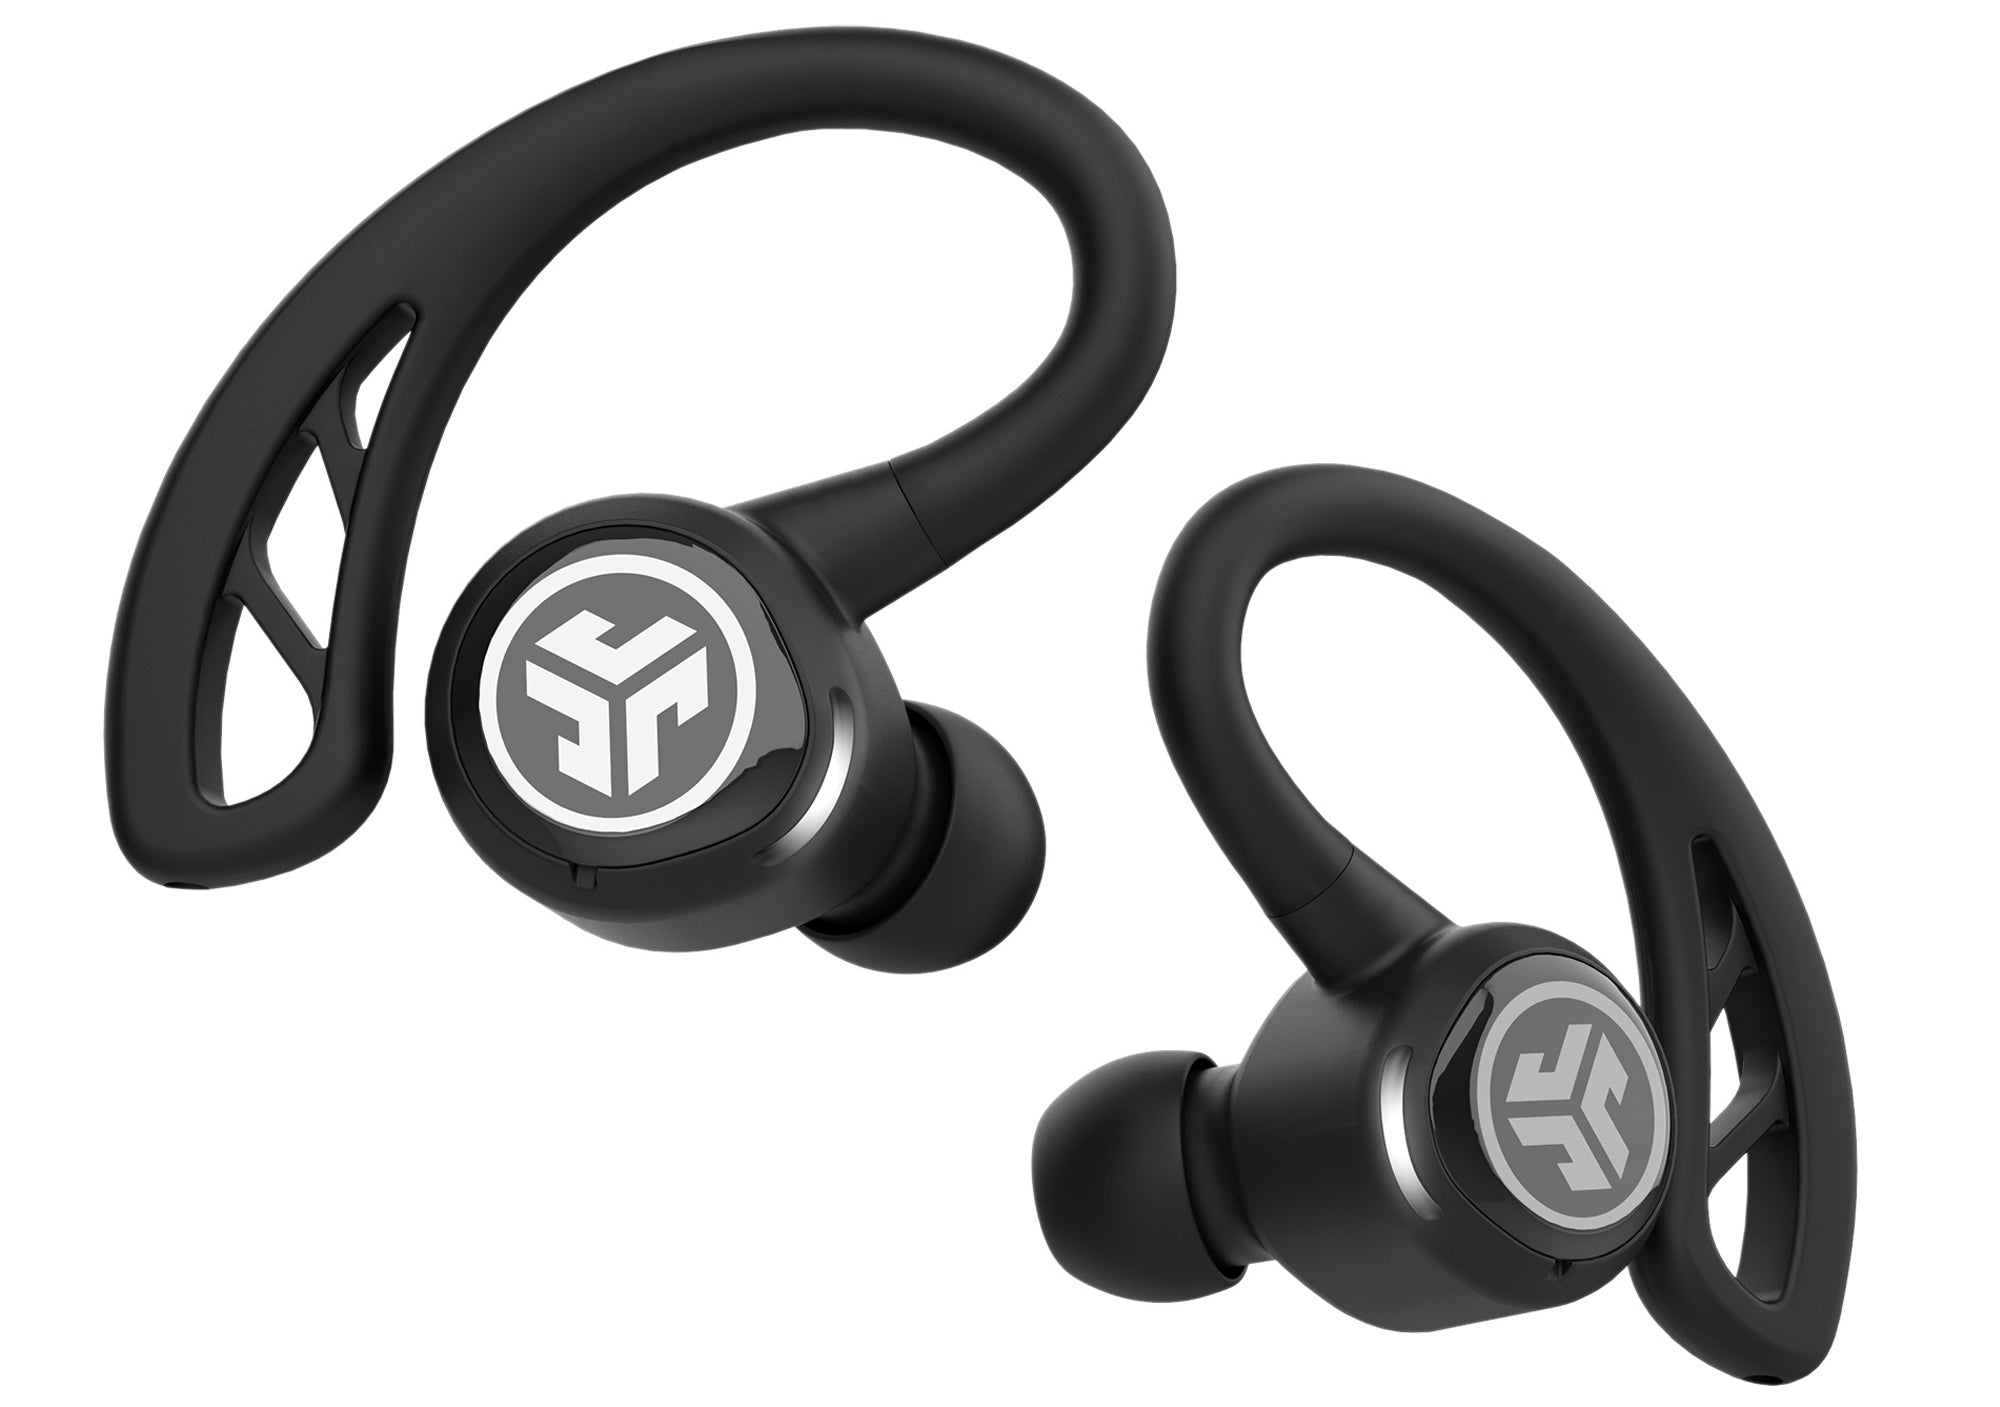 Close-up of Black Epic Air Elite True Wireless Earbuds